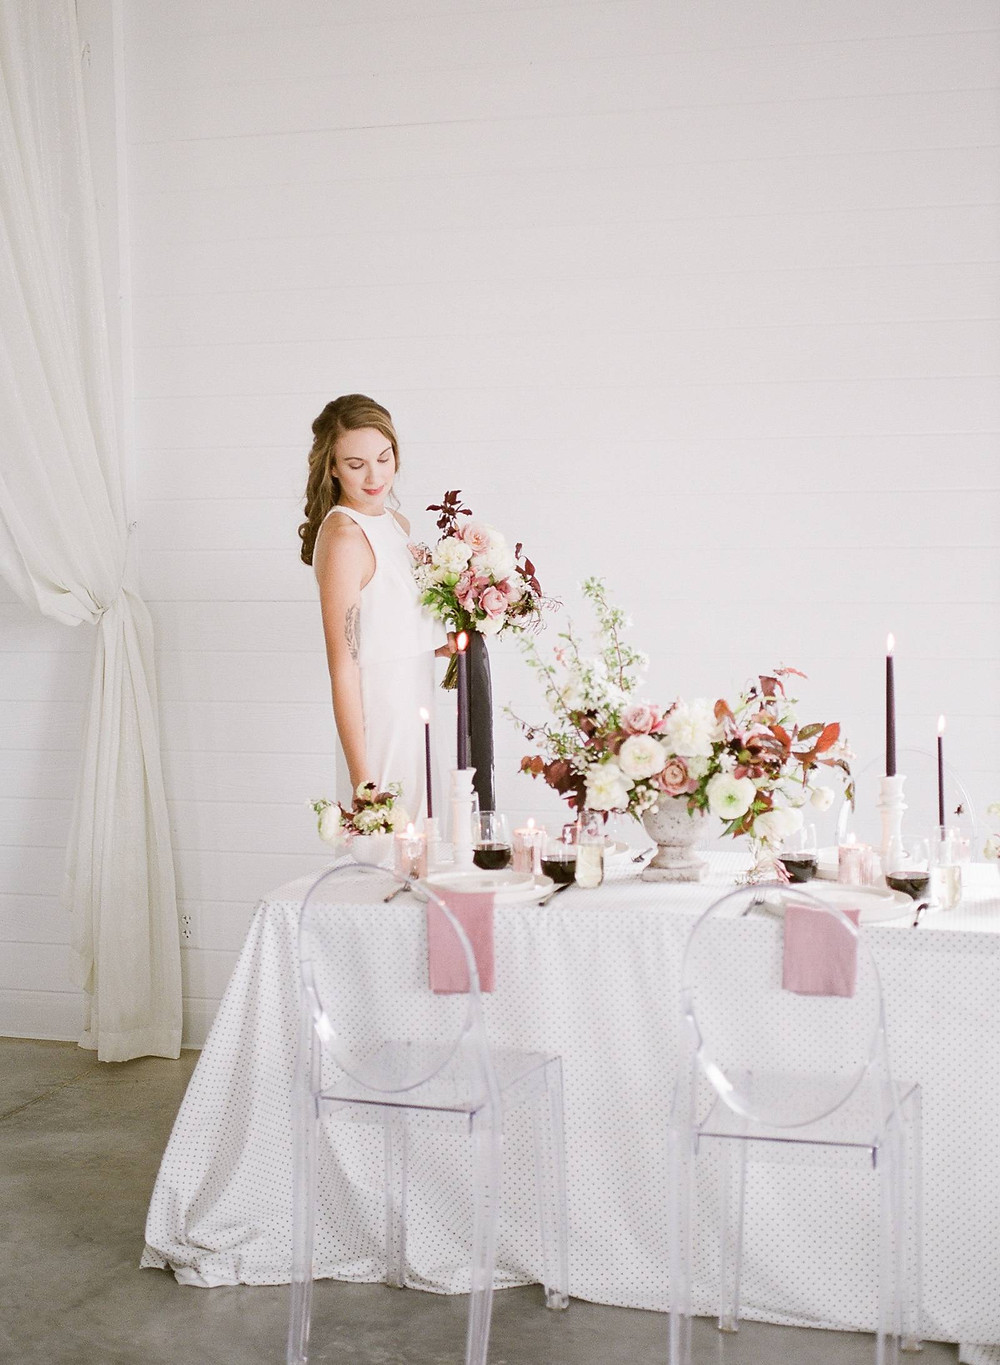 Modern wedding flowers by Studio Bloom Iowa of roses, ranunculus, peonies, plum, and flowering branches in mauve and white